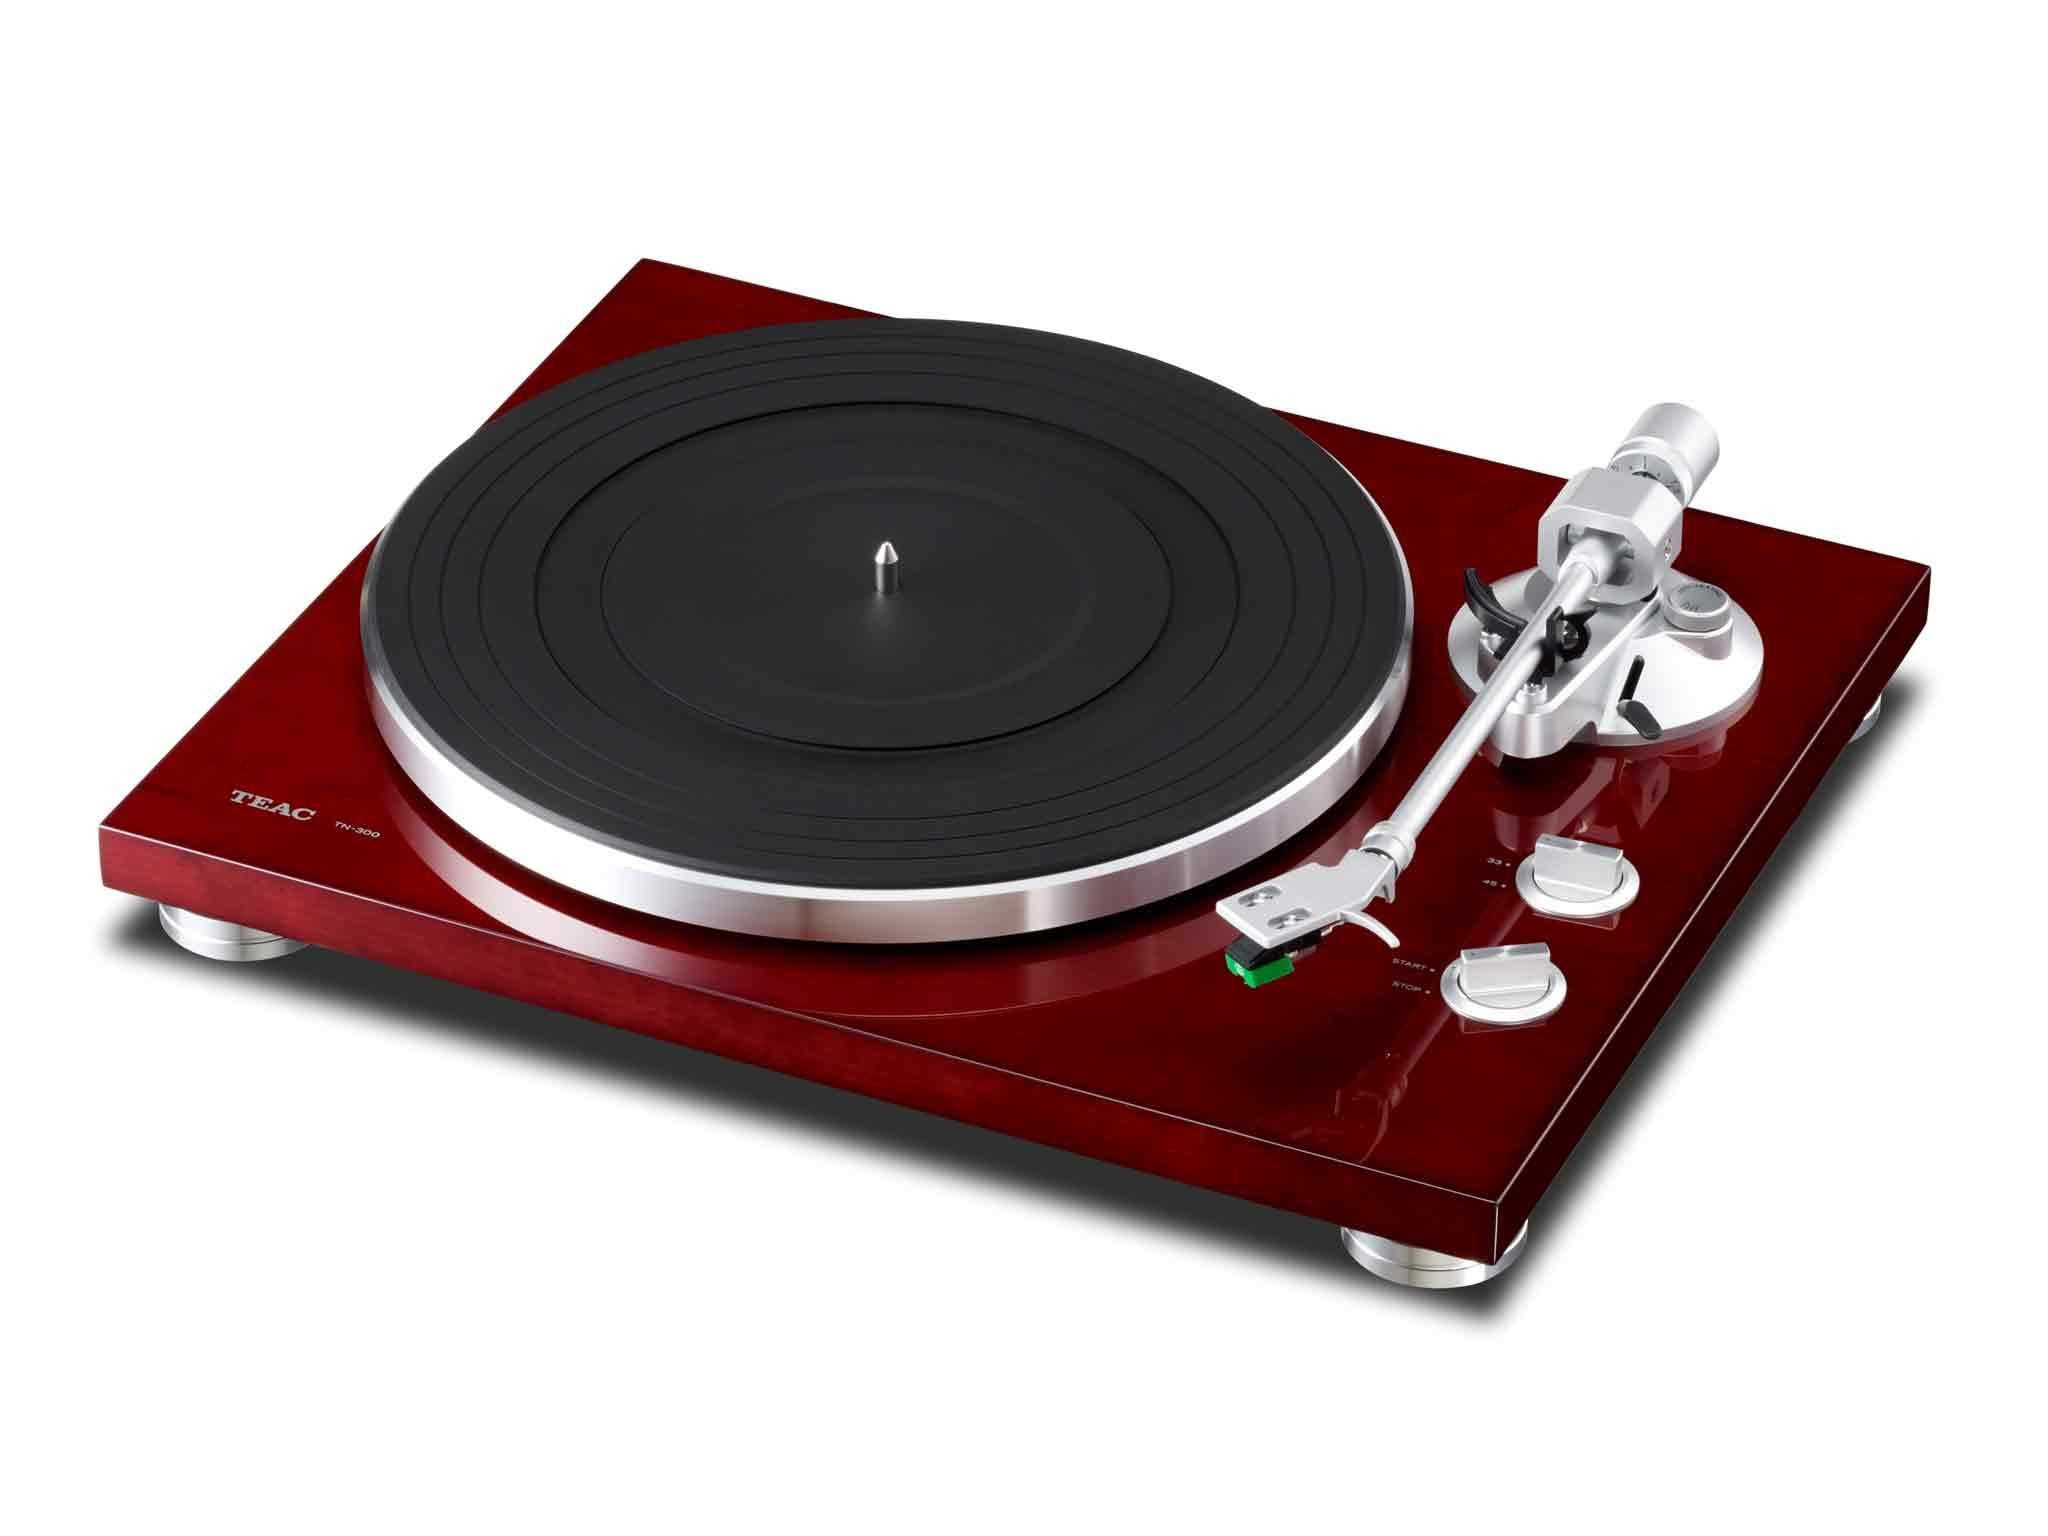 This Would Work As A Decent First Record Player For Someone Who Is Just  Dipping Their Toe Into Collecting Vinyl. Itu0027s Got Great Sound Quality, ...